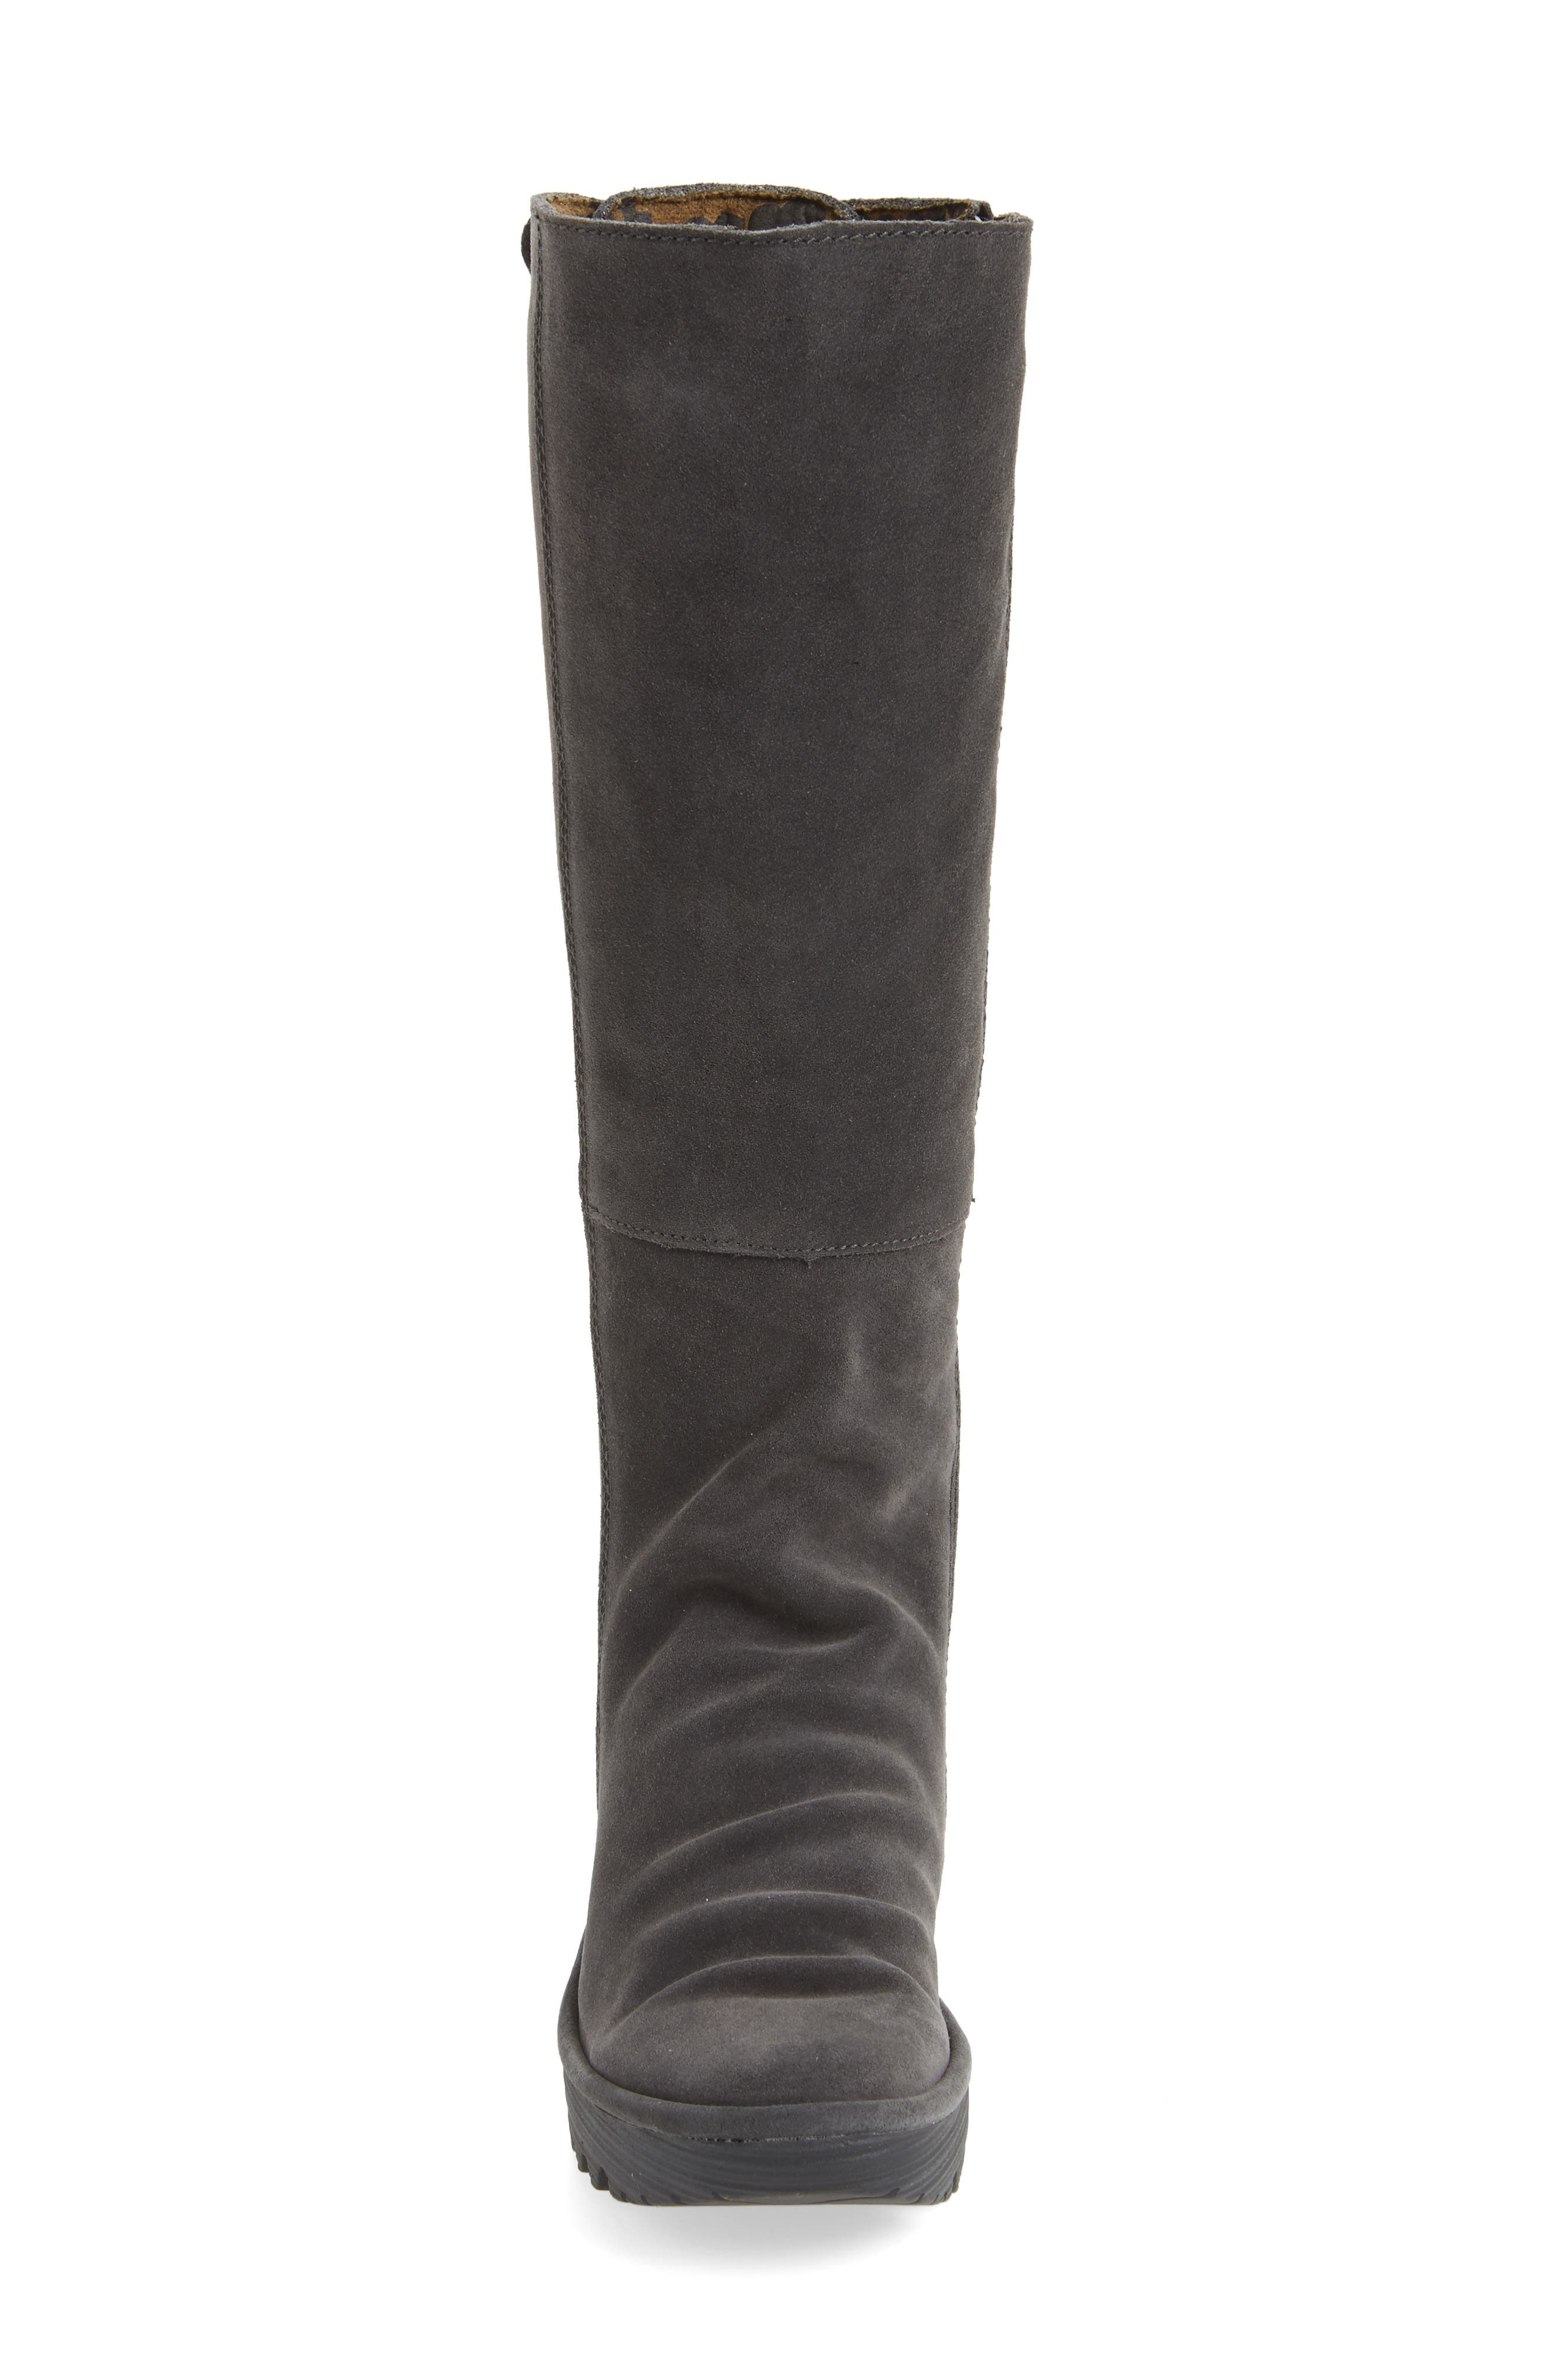 'Yust' Knee High Platform Wedge Boot,                             Alternate thumbnail 4, color,                             002